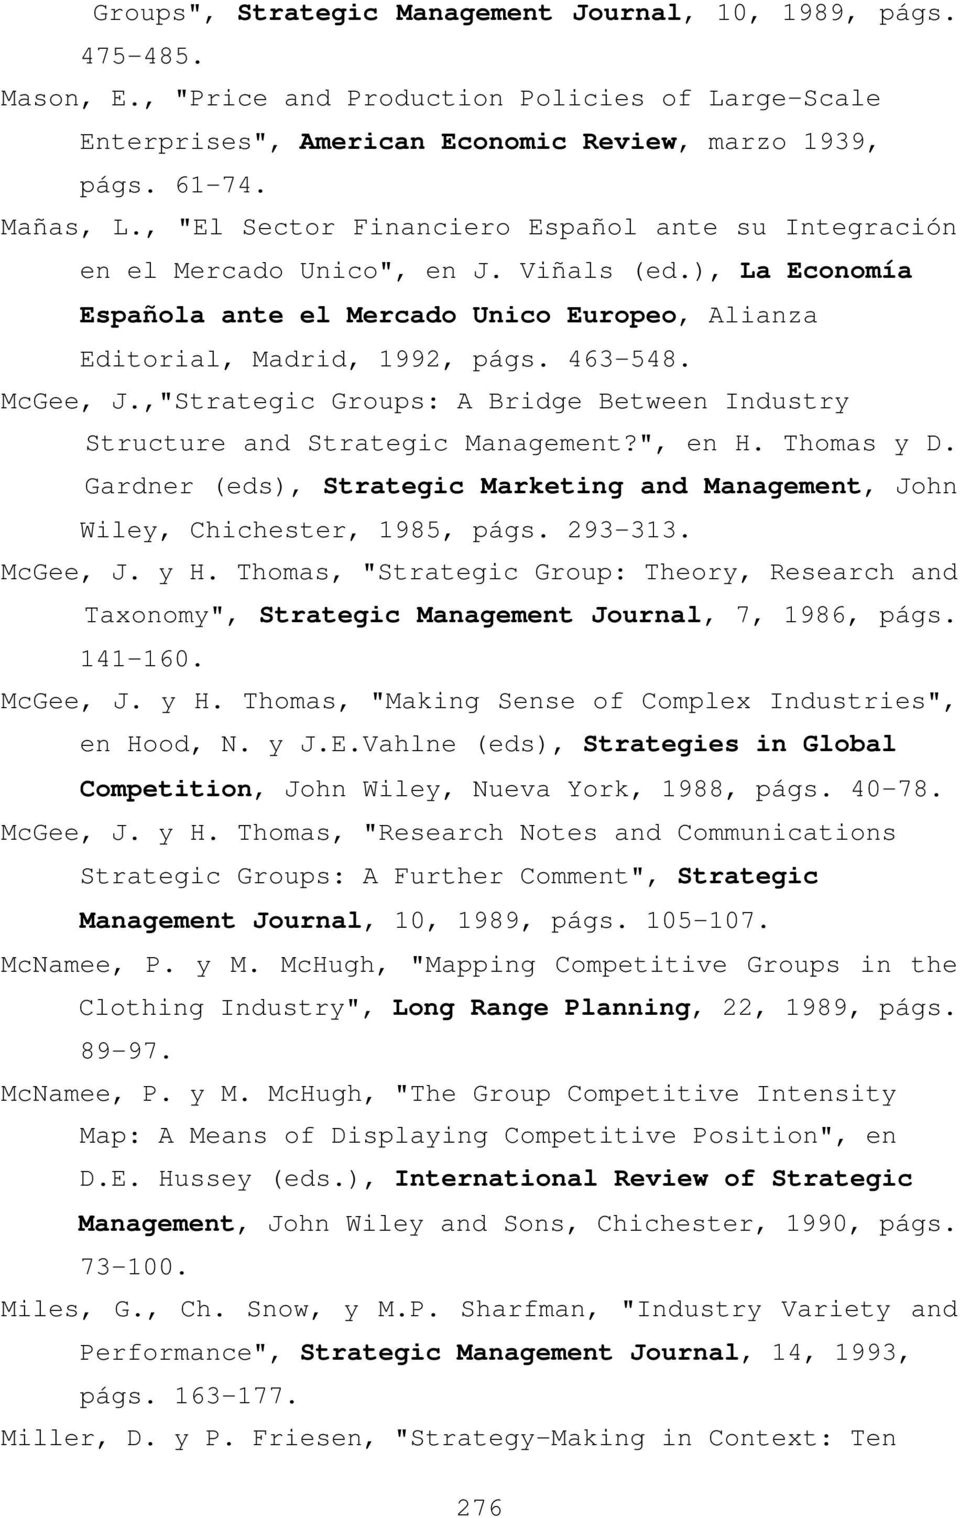 "McGee, J.,""Strategic Groups: A Bridge Between Industry Structure and Strategic Management?"", en H. Thomas y D. Gardner (eds), Strategic Marketing and Management, John Wiley, Chichester, 1985, págs."